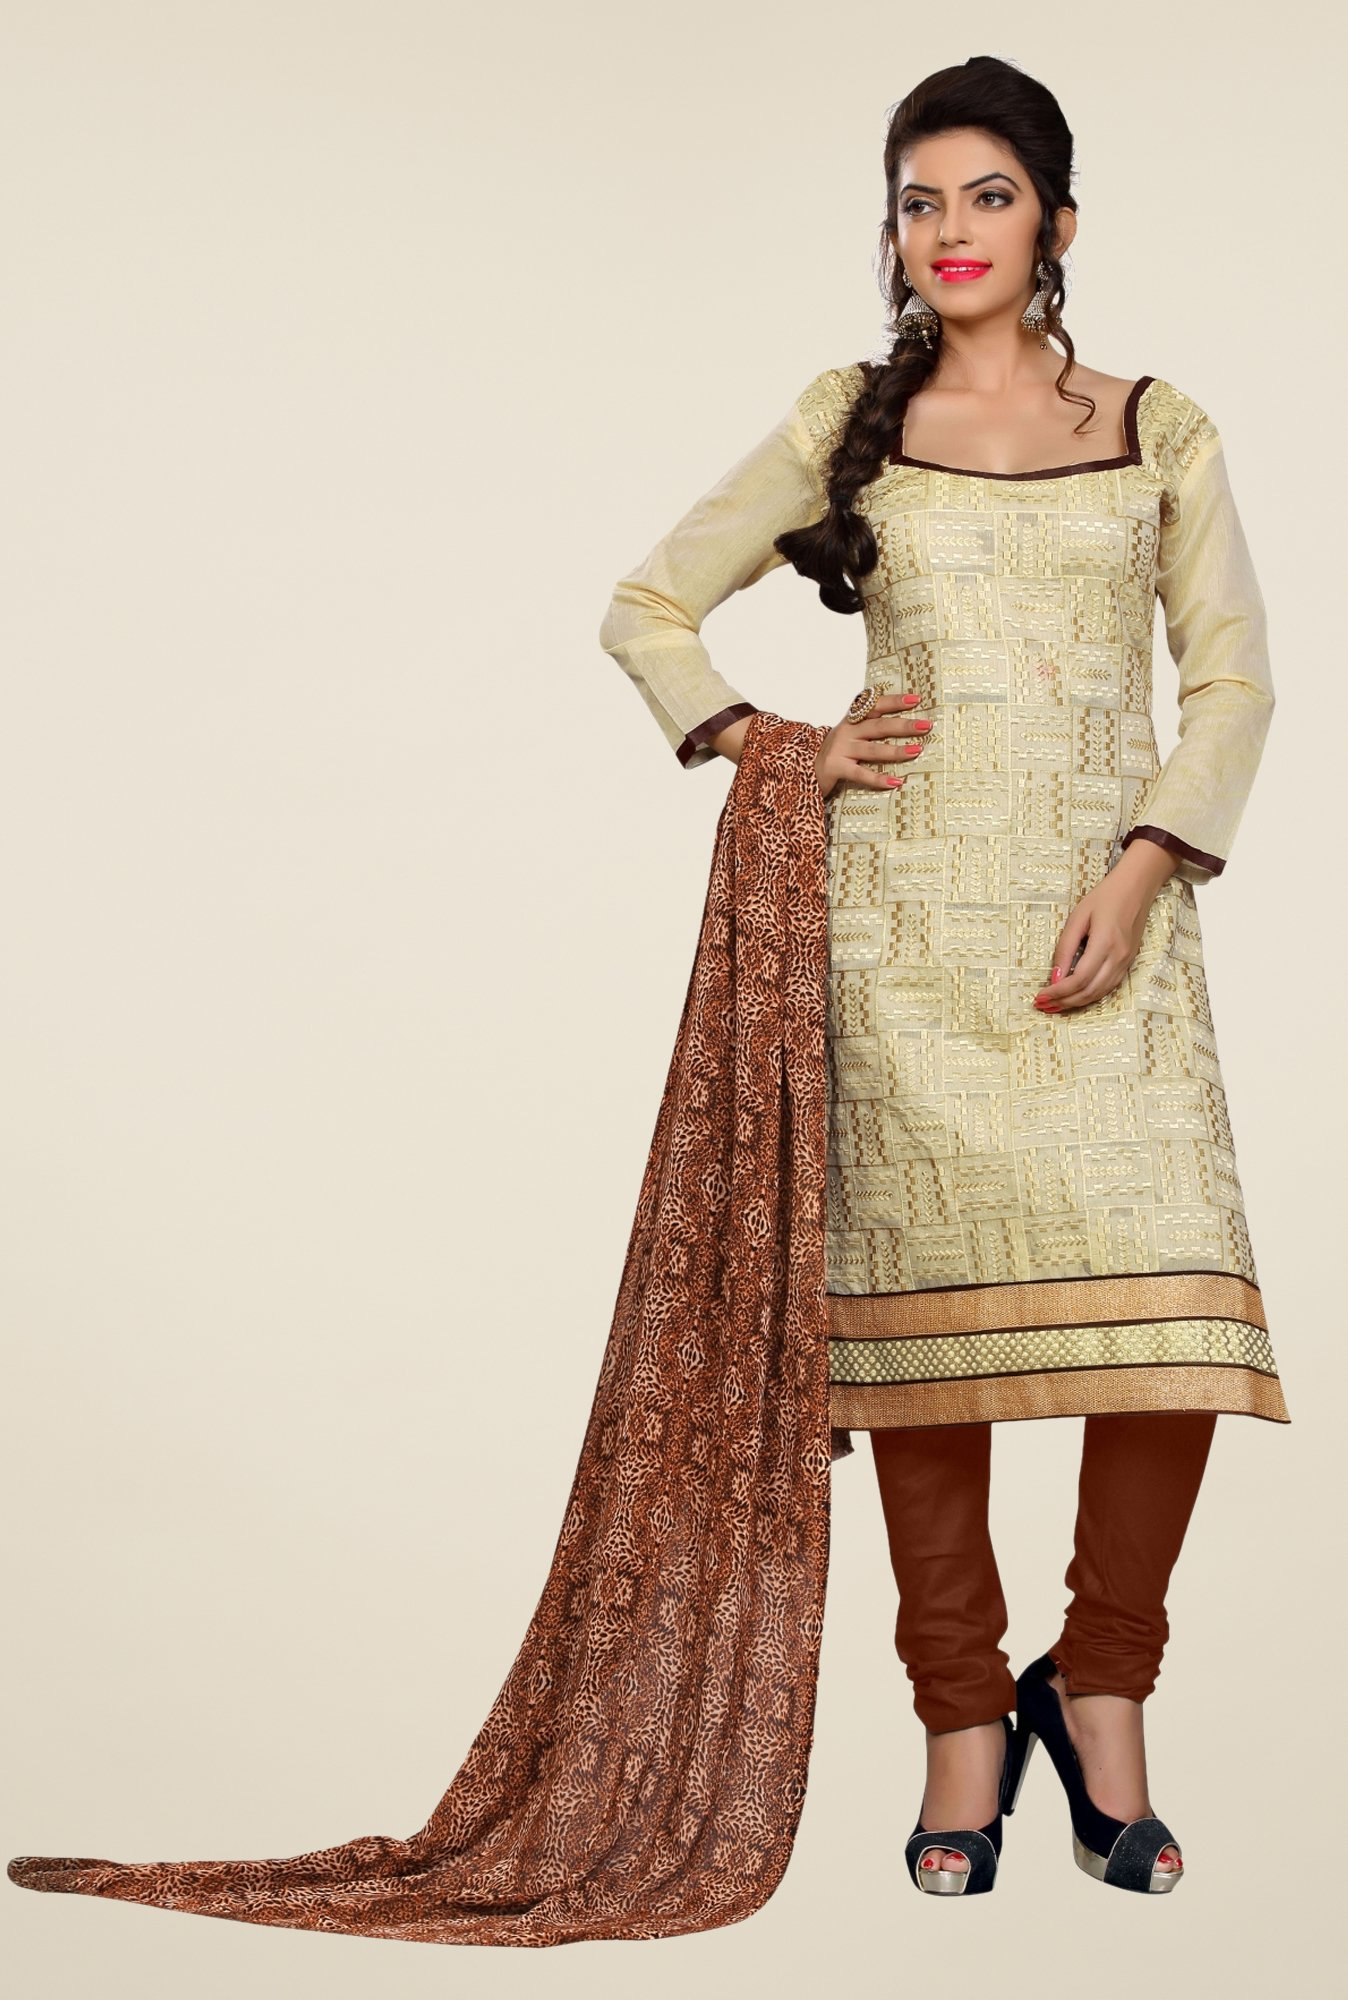 Triveni Beige Embellished Dress Material